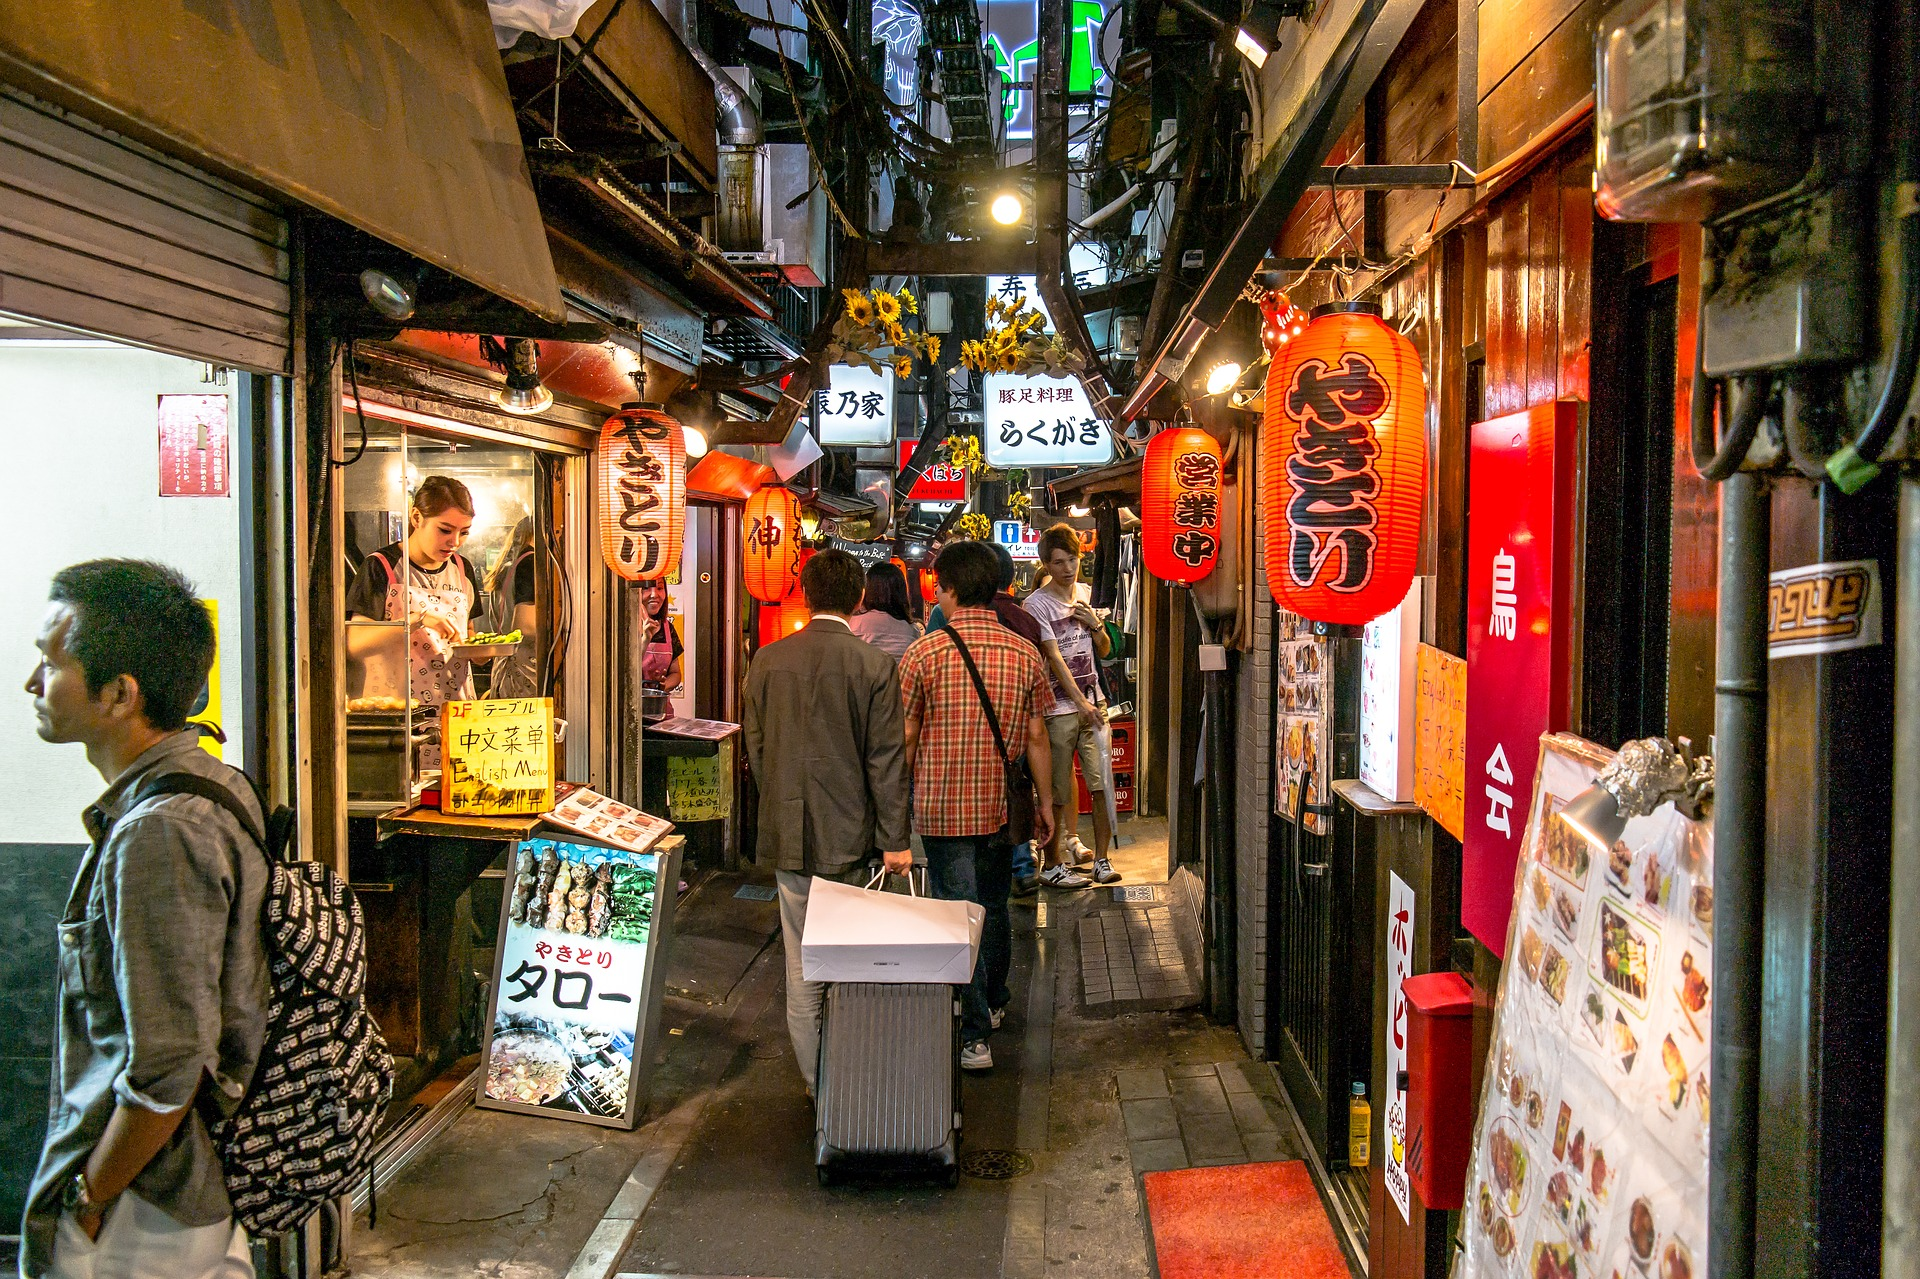 An obvious cool thing to do in Tokyo is check out the awesome nightlife